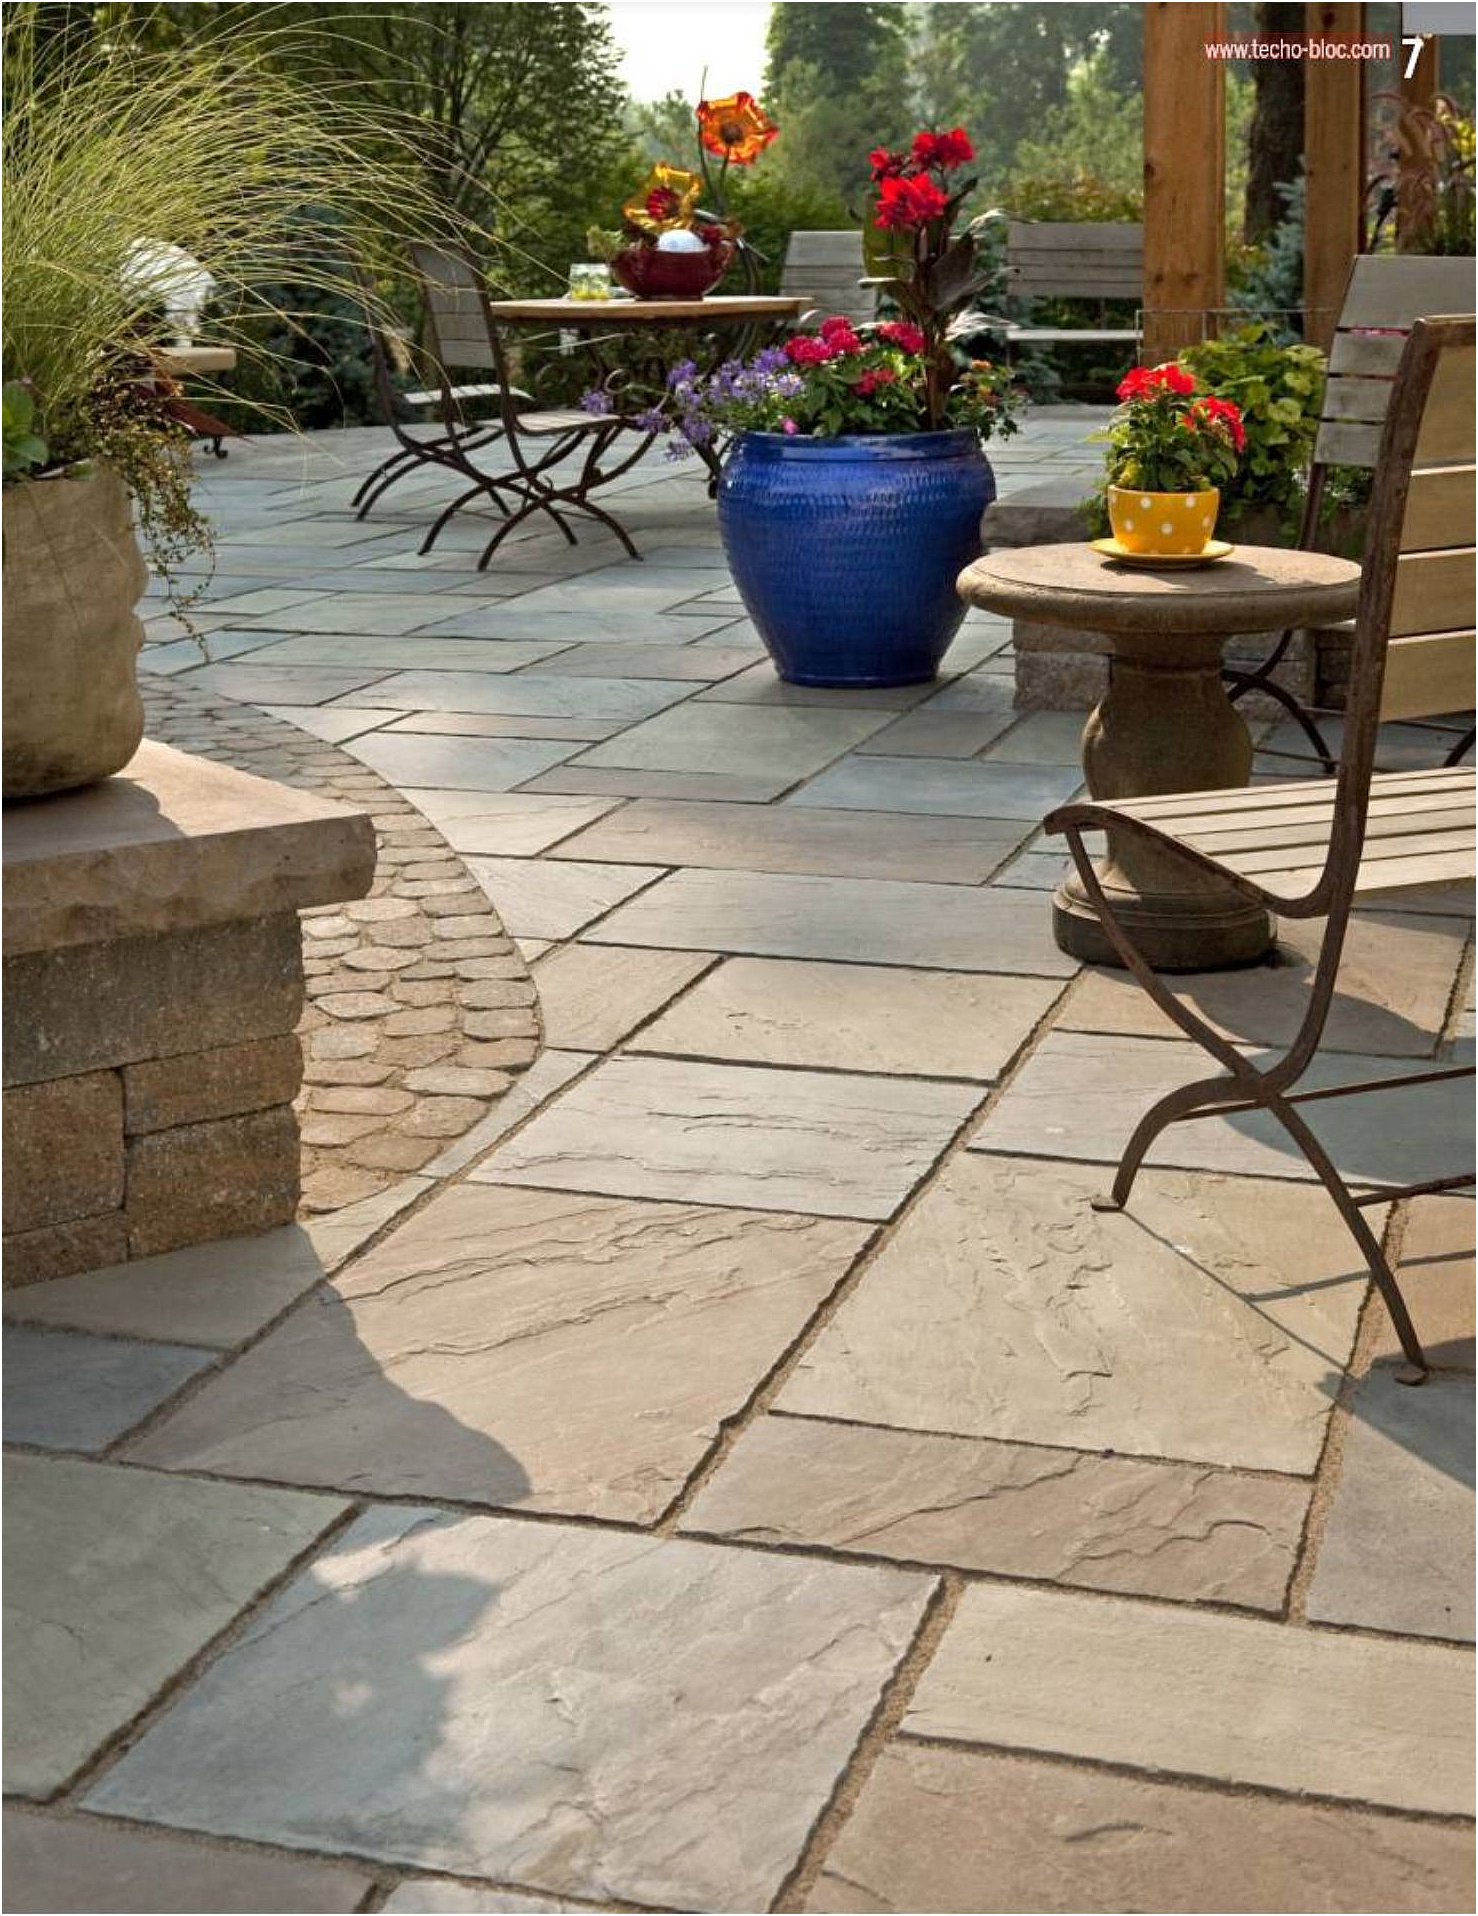 6. Use stamped concrete via Simphome.com